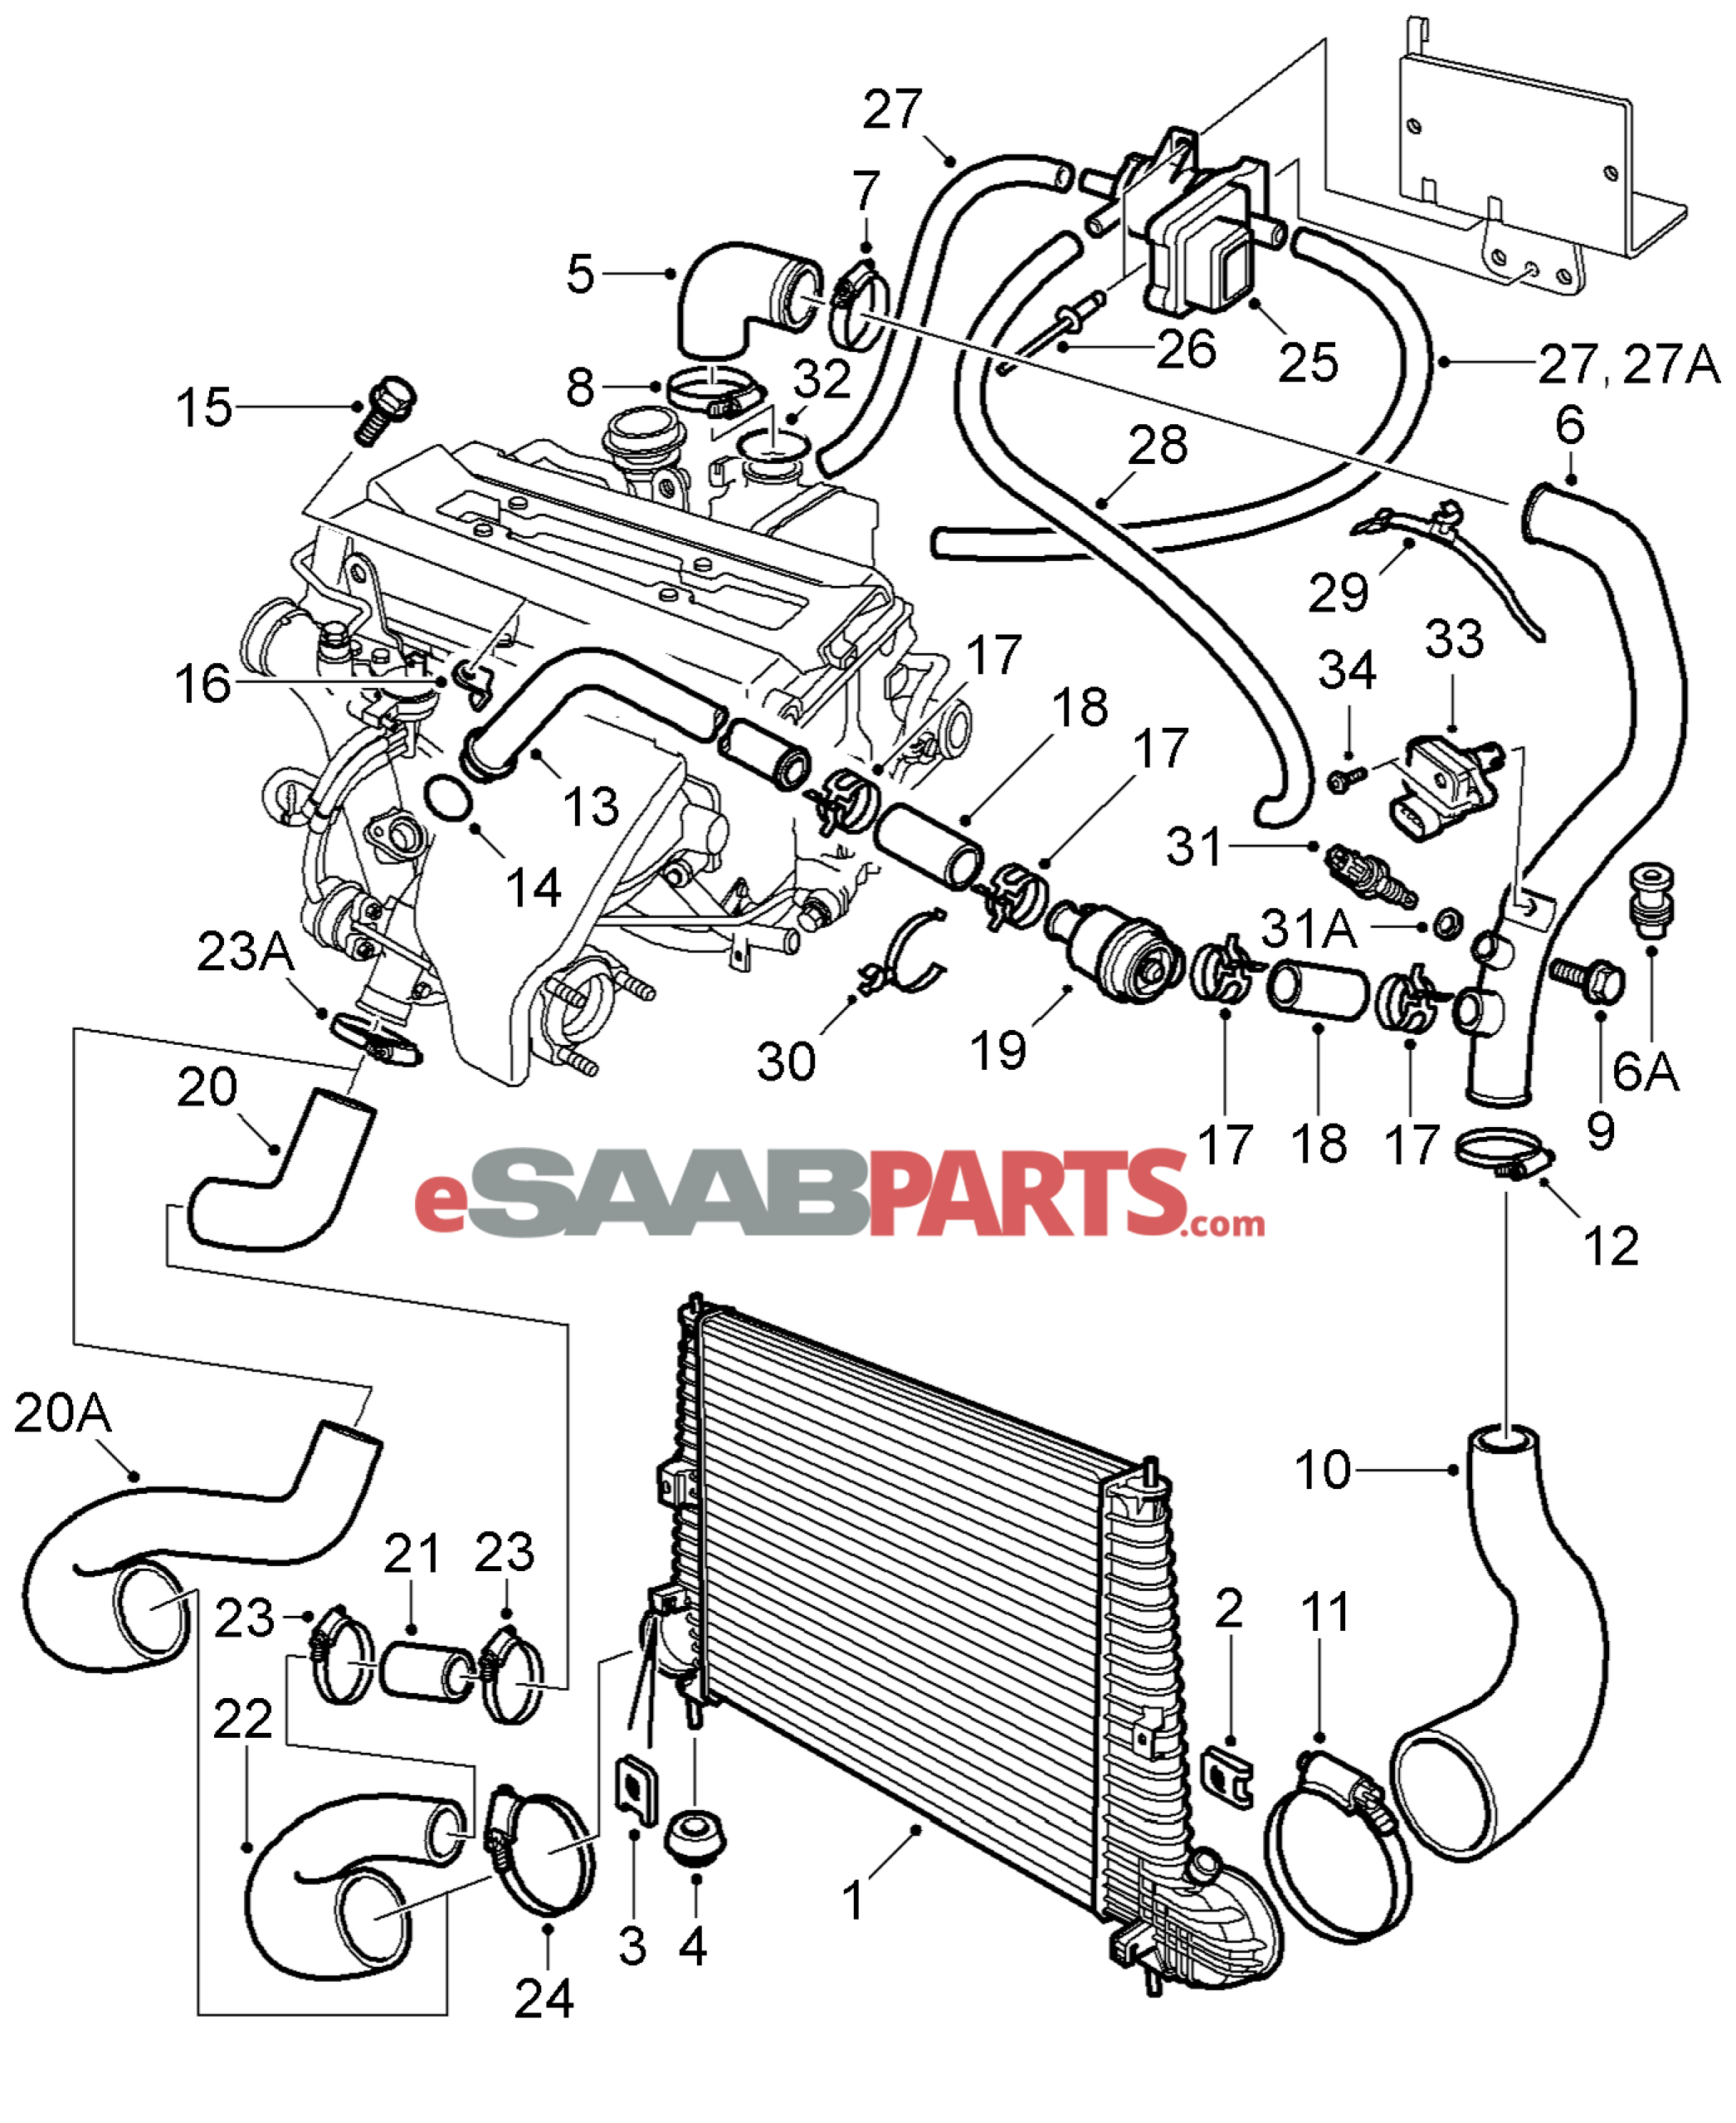 Saab 95 Engine Diagram further 2004 Chevy Silverado Rear Ke Wiring Diagram further Saab 9 3 Fuel Pump Location furthermore 2002 Buick Rendezvous Thermostat Location likewise Chrysler Pacifica Fuse Box Diagram Image Details. on 2004 saab 9 3 water pump